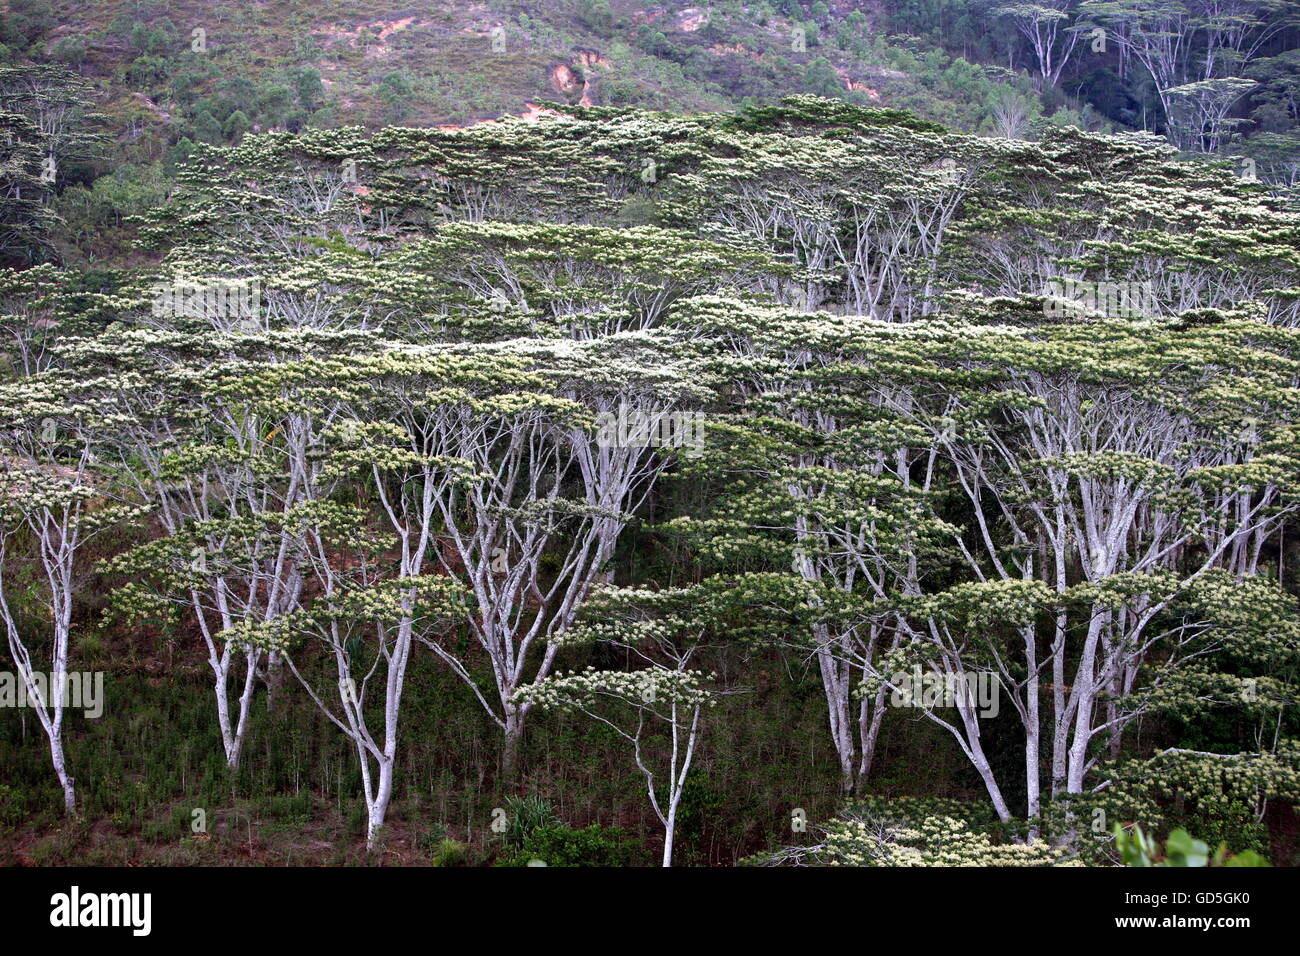 a tropical forest near the city of Dili in the south of East Timor in southeastasia. Stock Photo